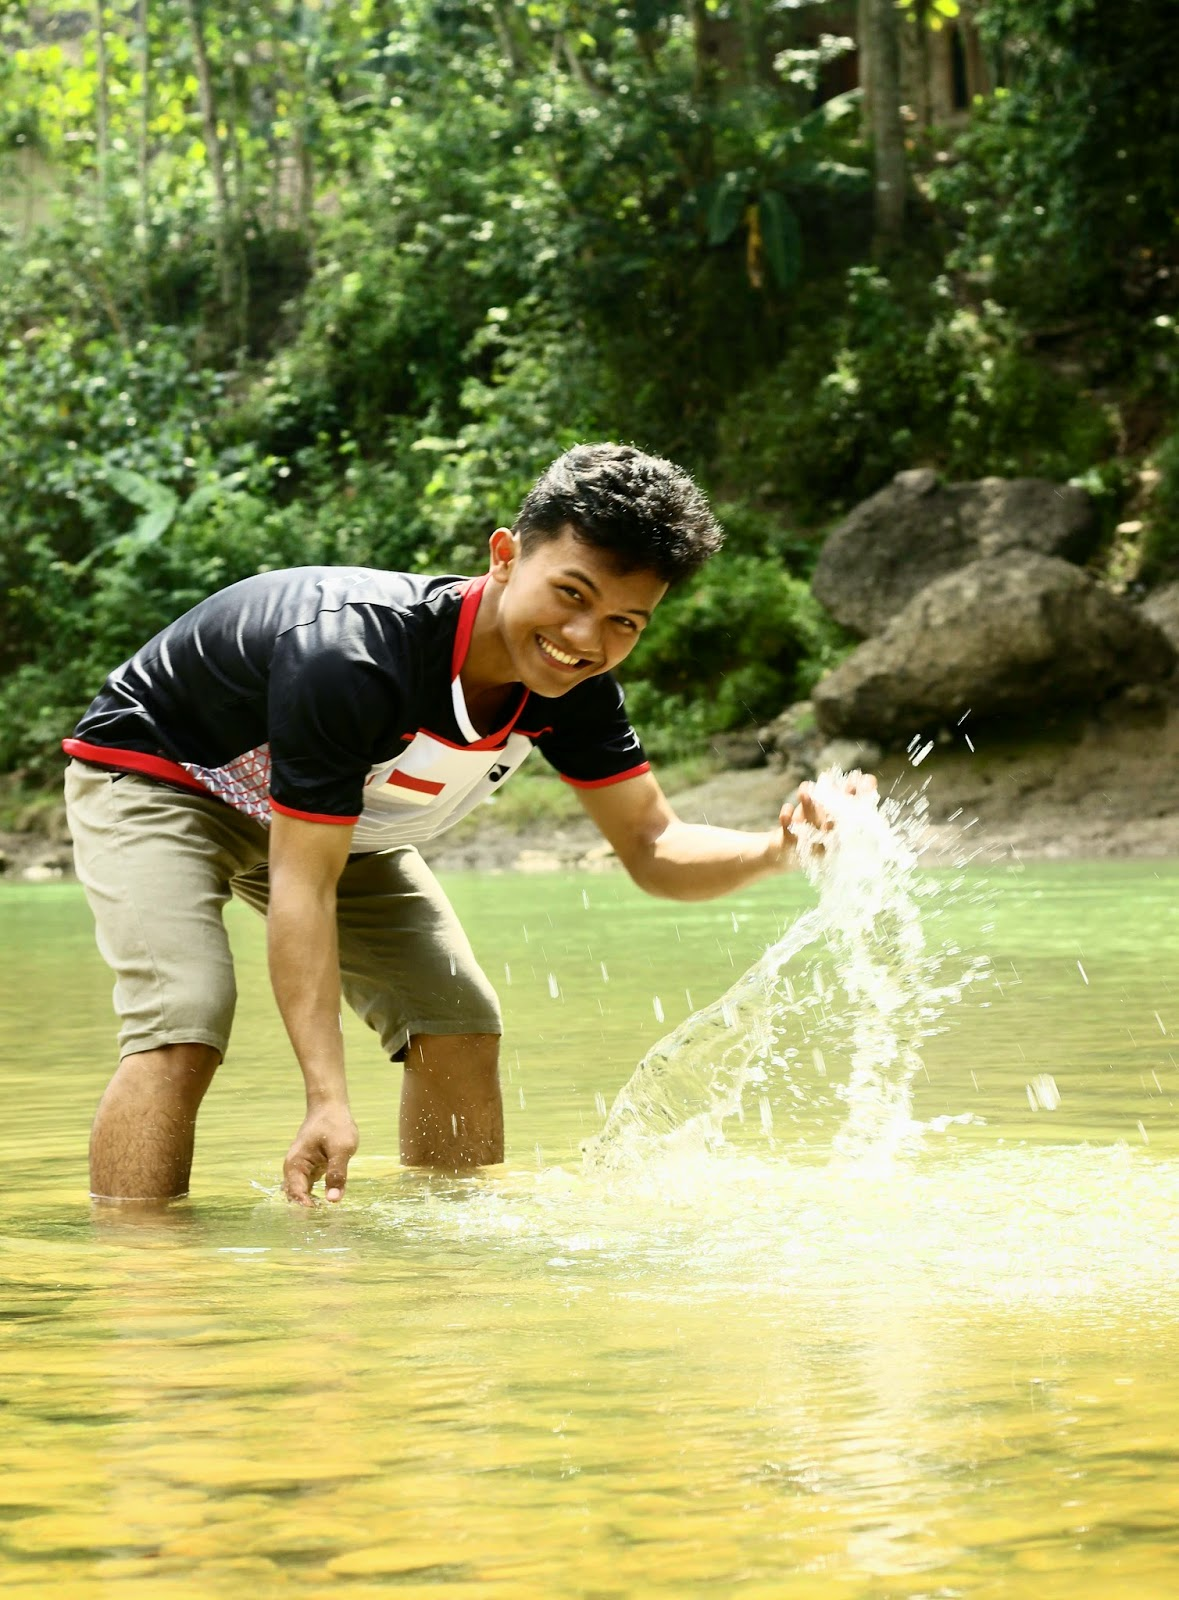 main air di sungai